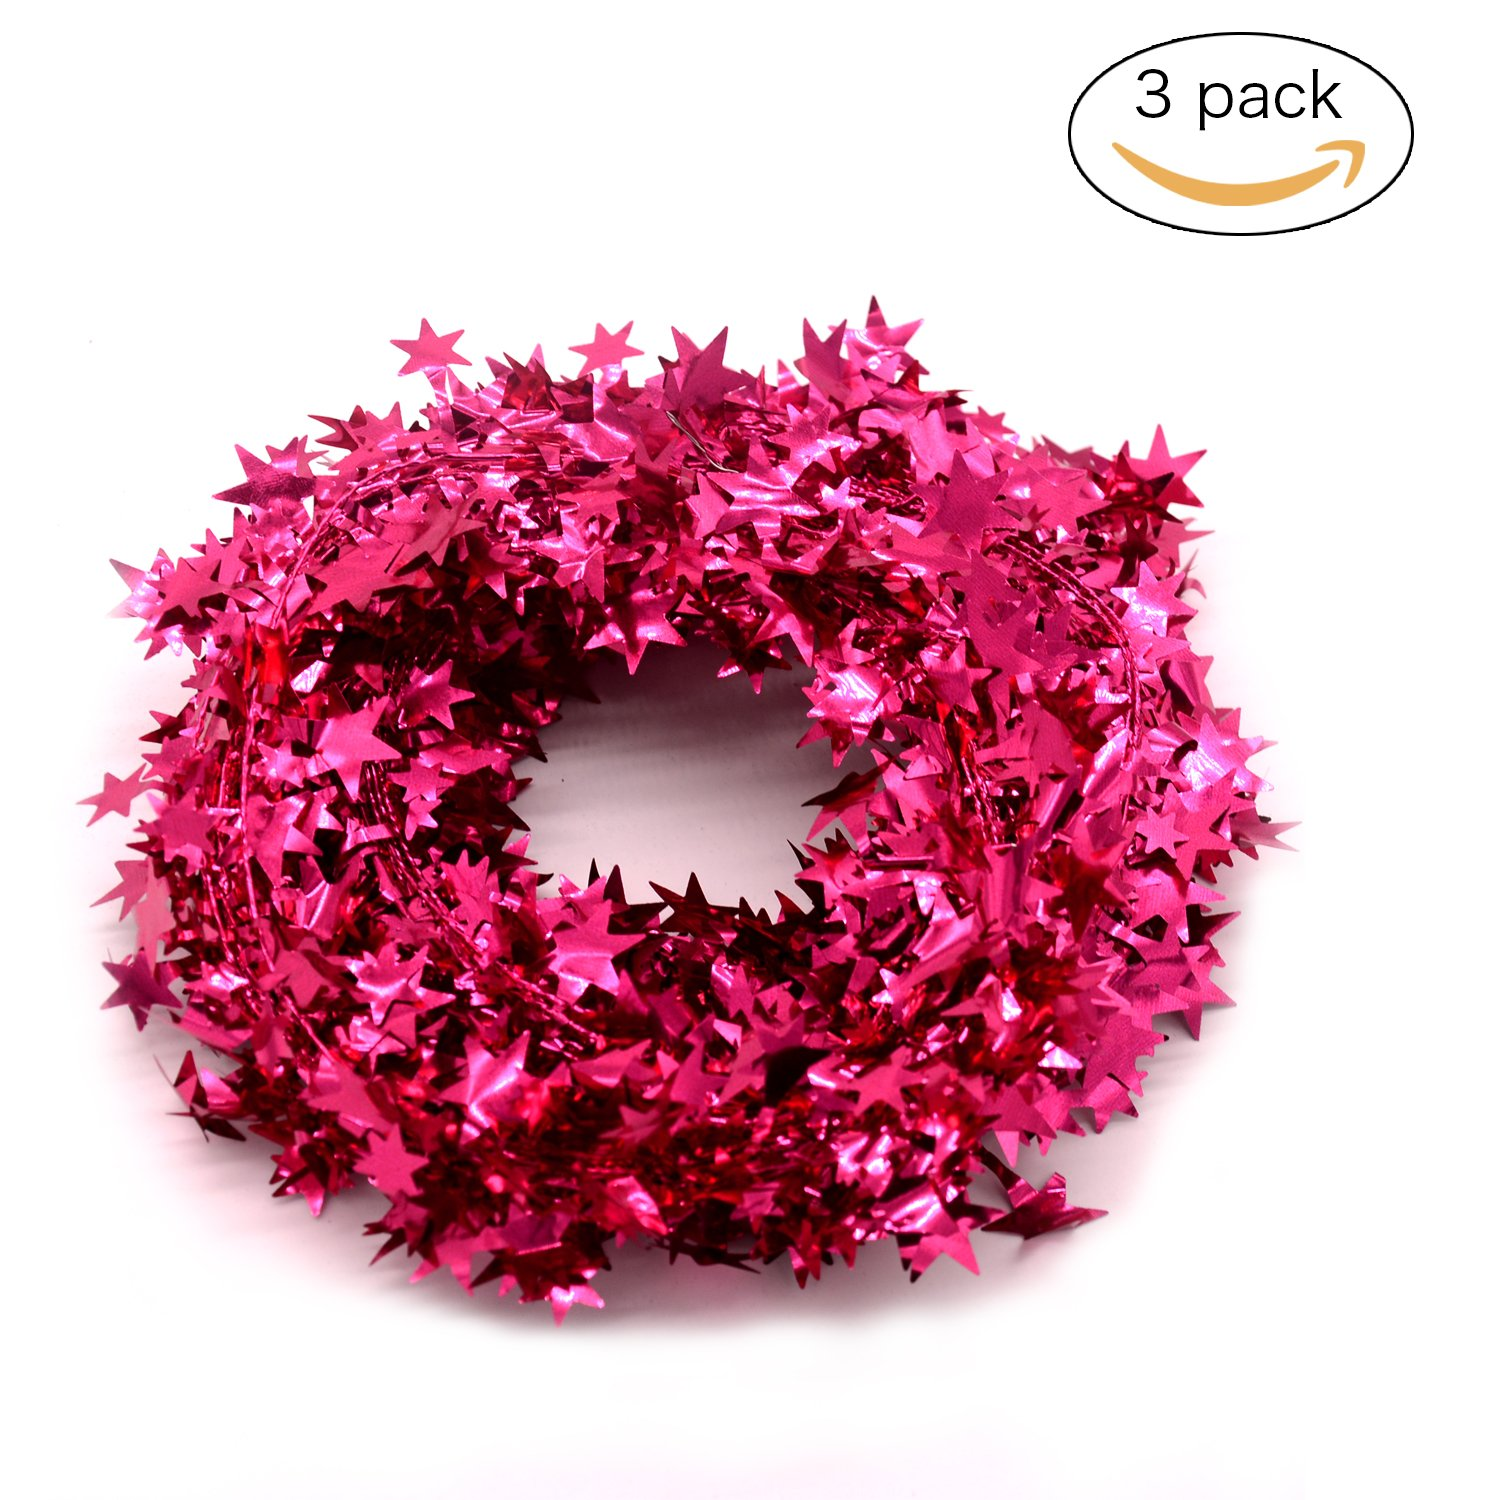 JINZAN 3PCS Wire Star Garland Tinsel Stars Garland Christmas Decorations Party Accessory,25 Ft x 3 (pink)